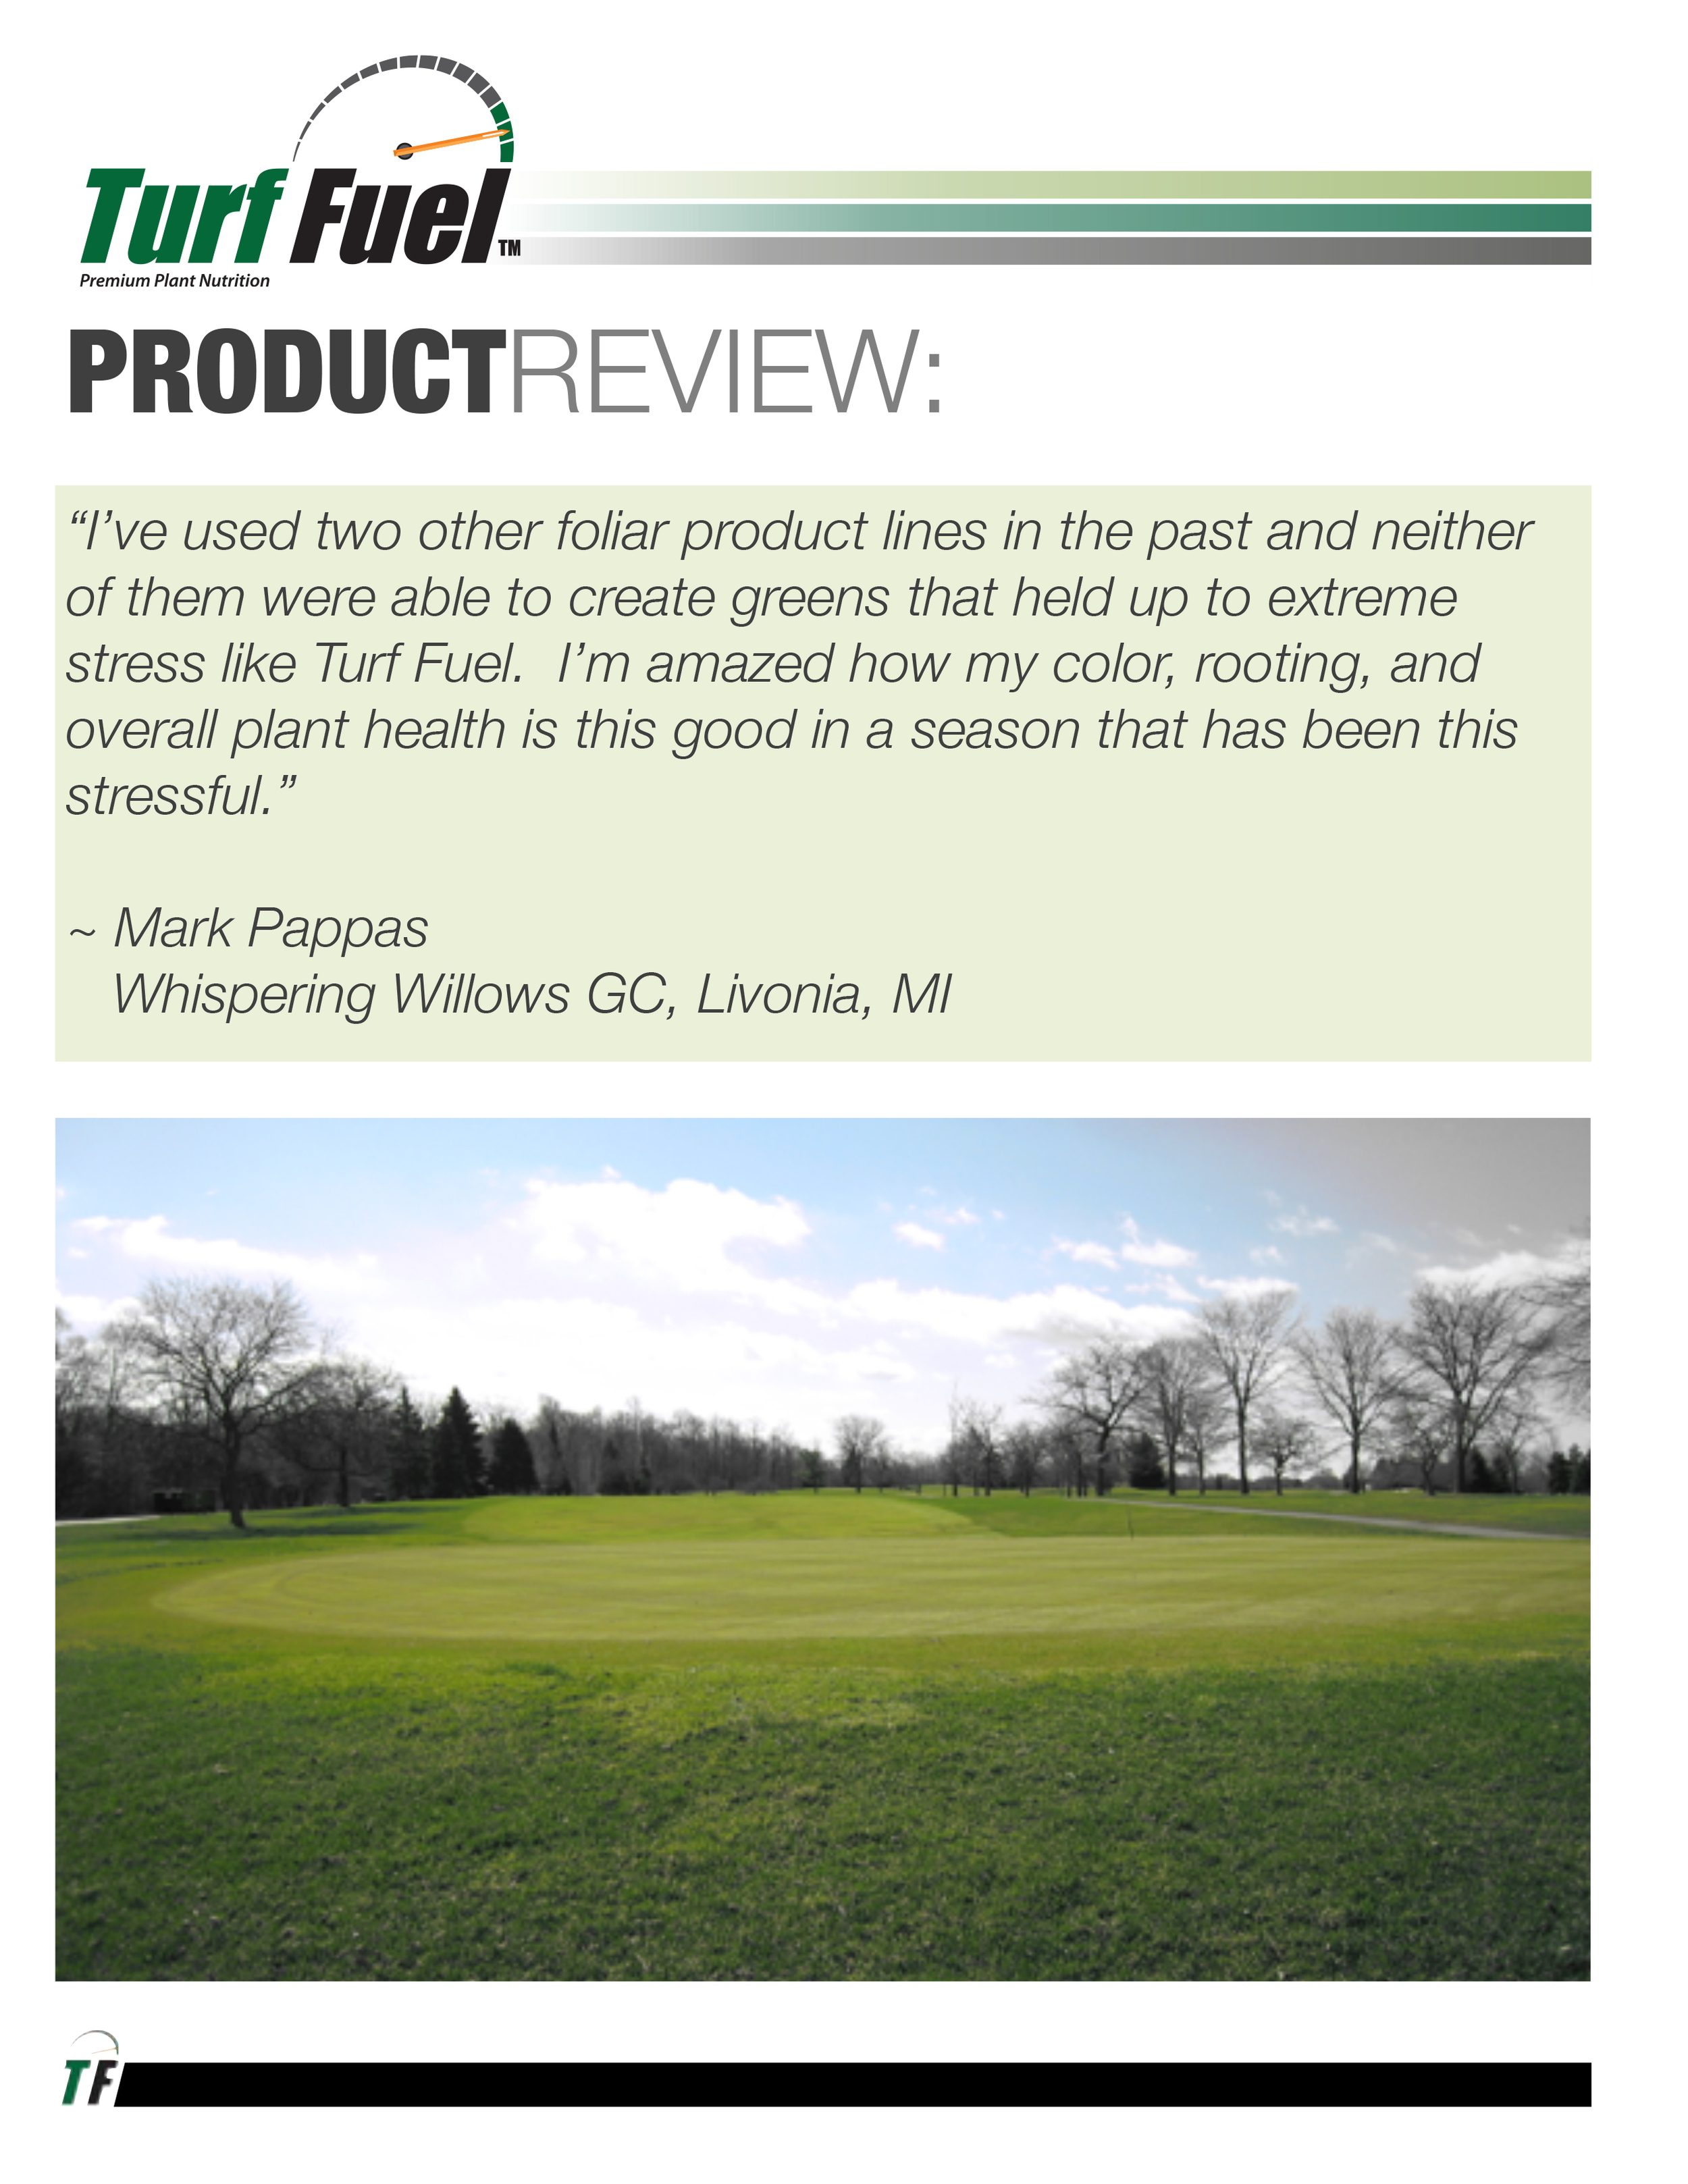 PRODUCT REVIEW Whispering Willows